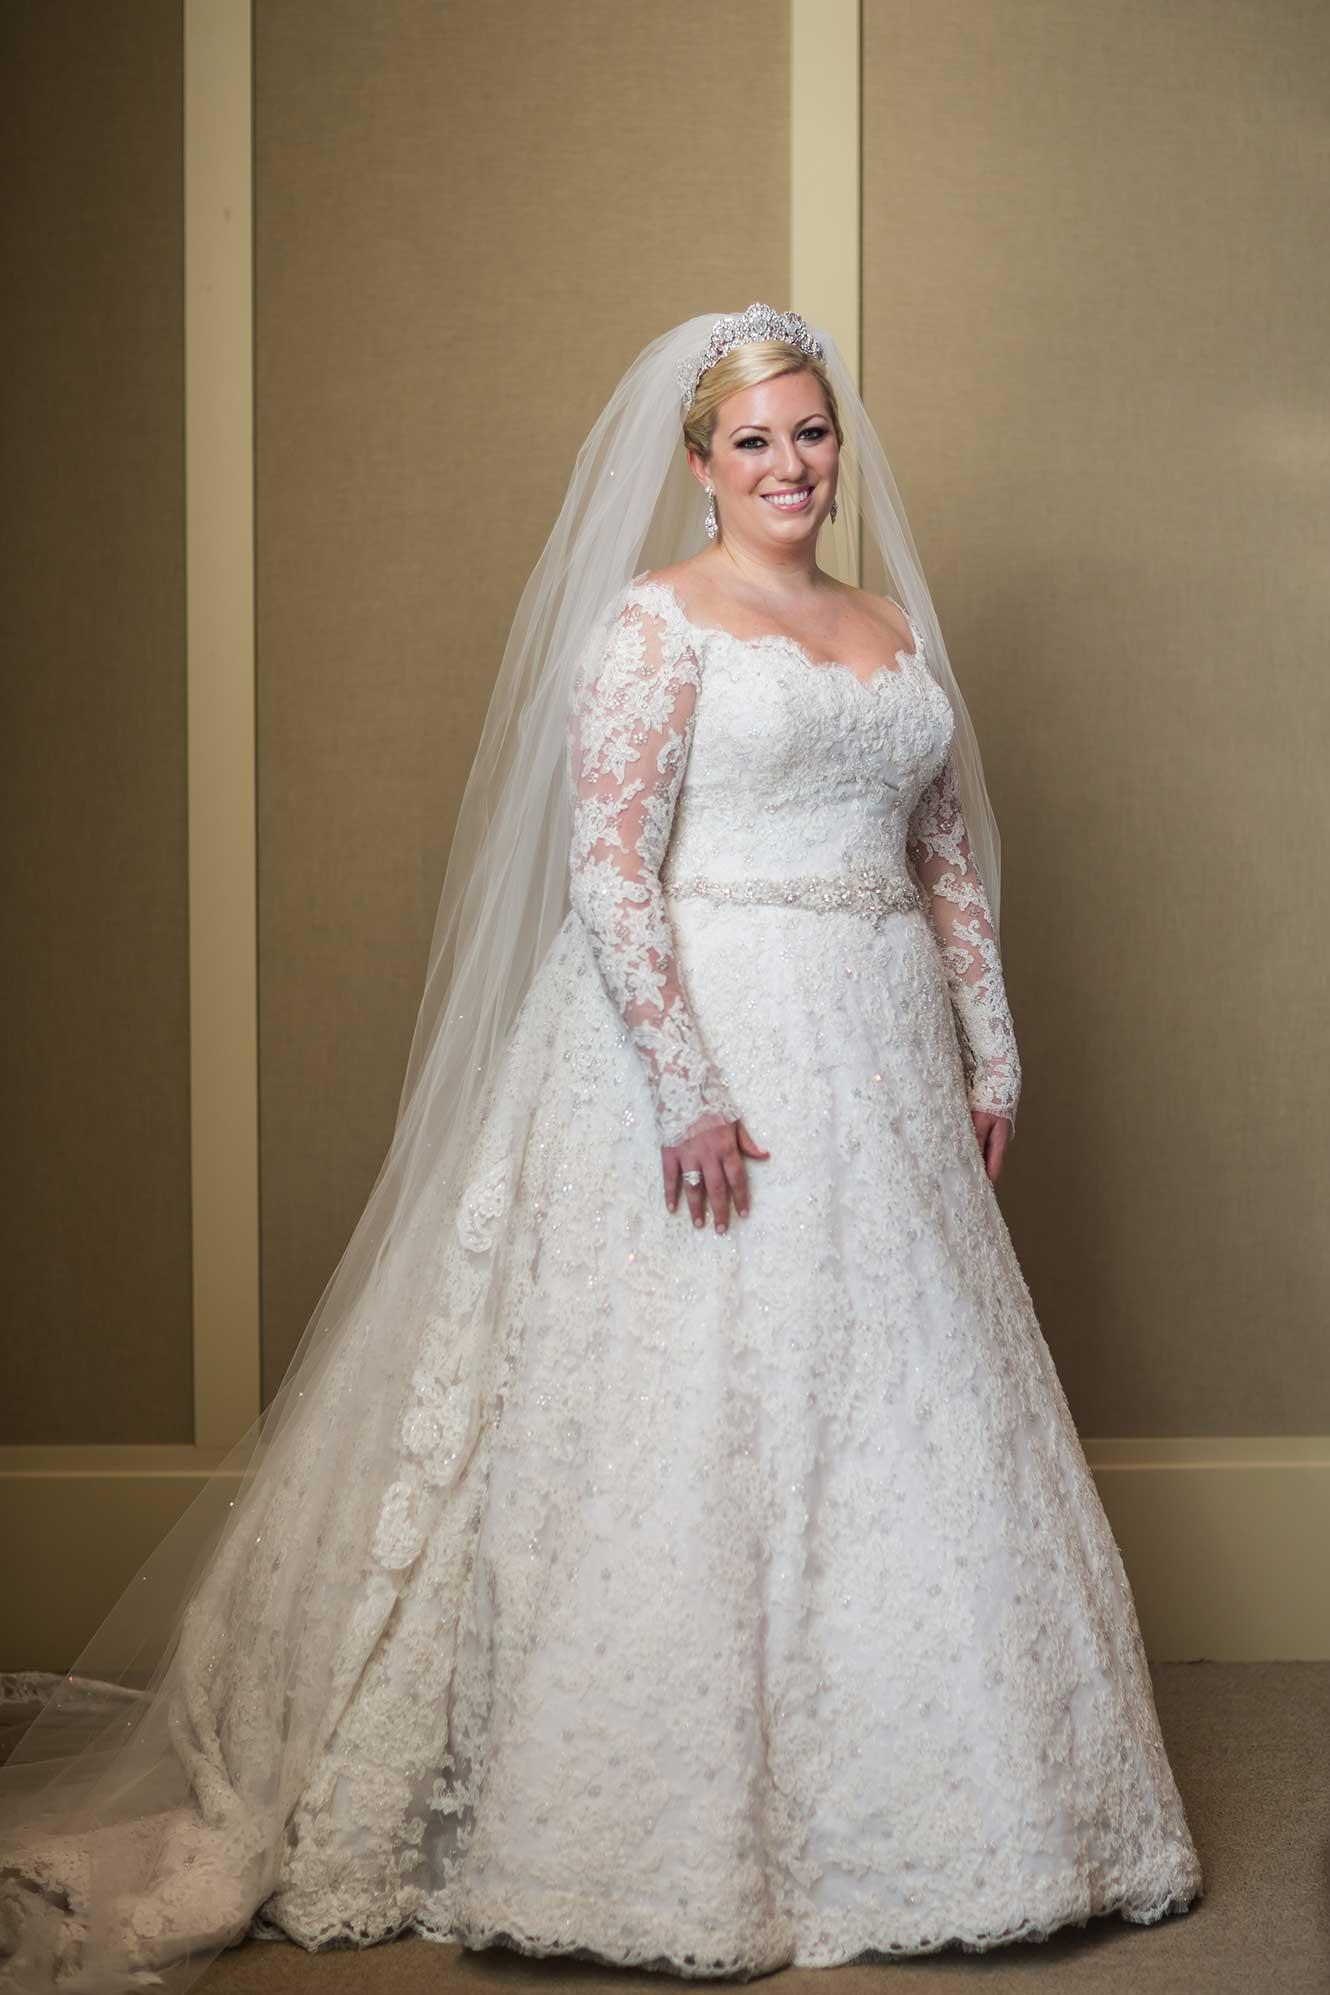 Cory becca allens wedding gallery say yes to the dress syttd allenceremony 274 ombrellifo Images